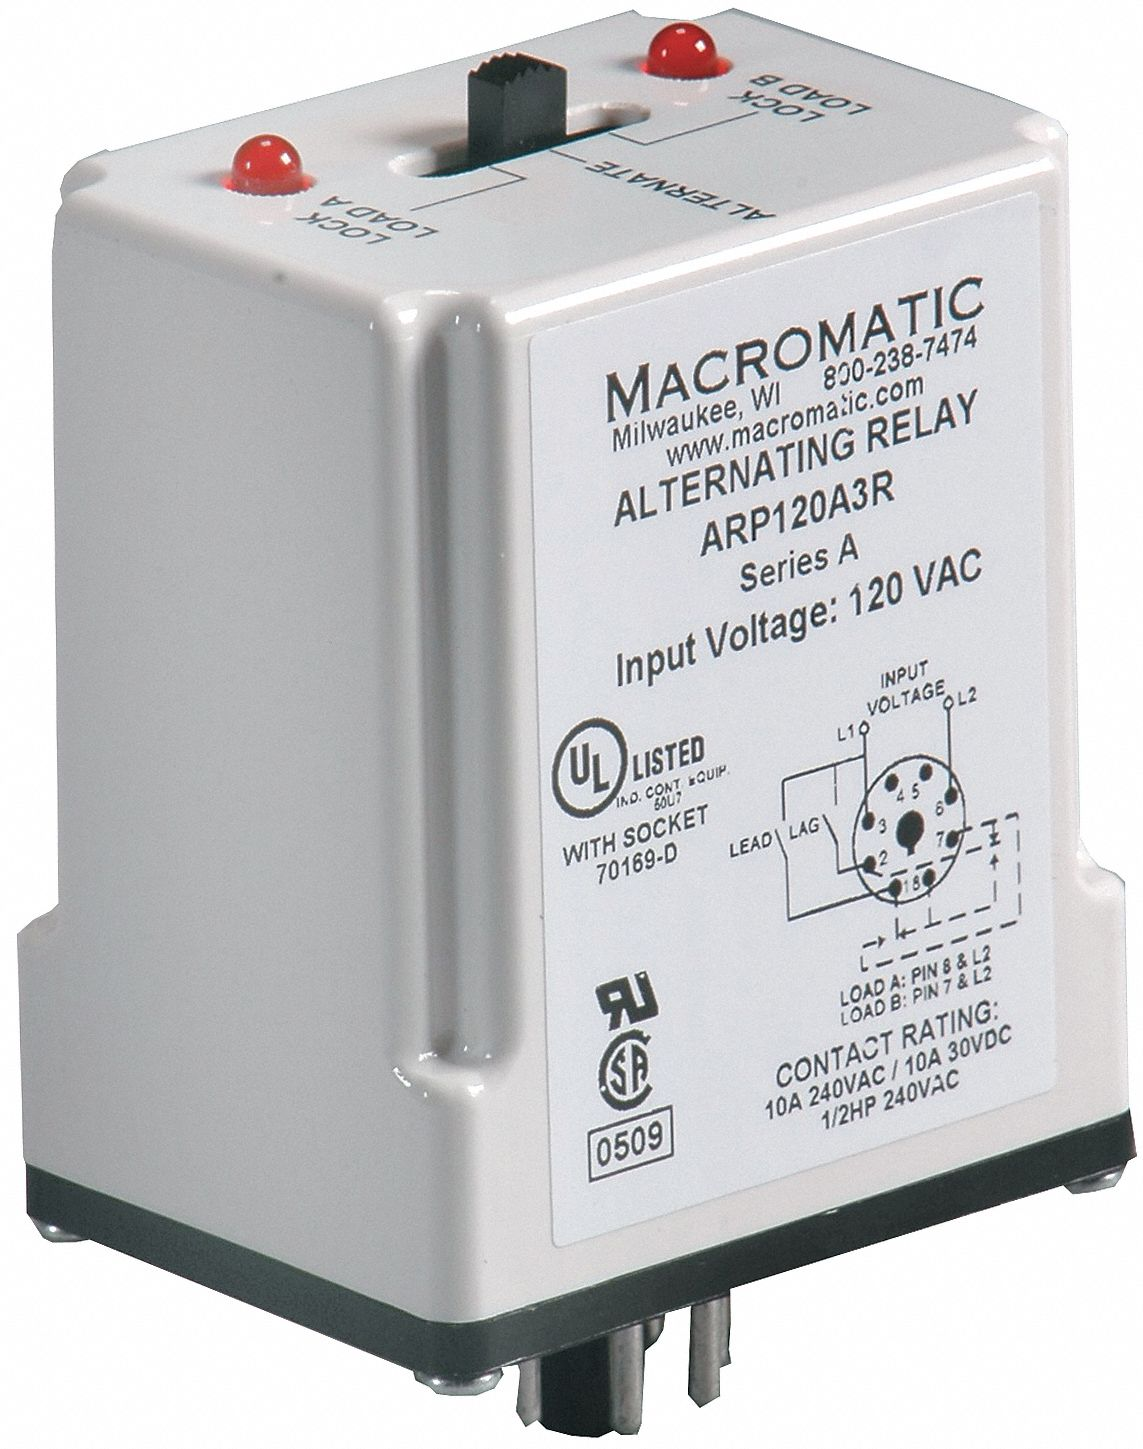 MACROMATIC Alternating Relay, 120VAC, 10A @ 240V, 10A @ 28V, Octal Base  Type, 8 Pins, 3.0VA, DPDT Cross-Wired - 6MPN9|ARP120A3R - Grainger